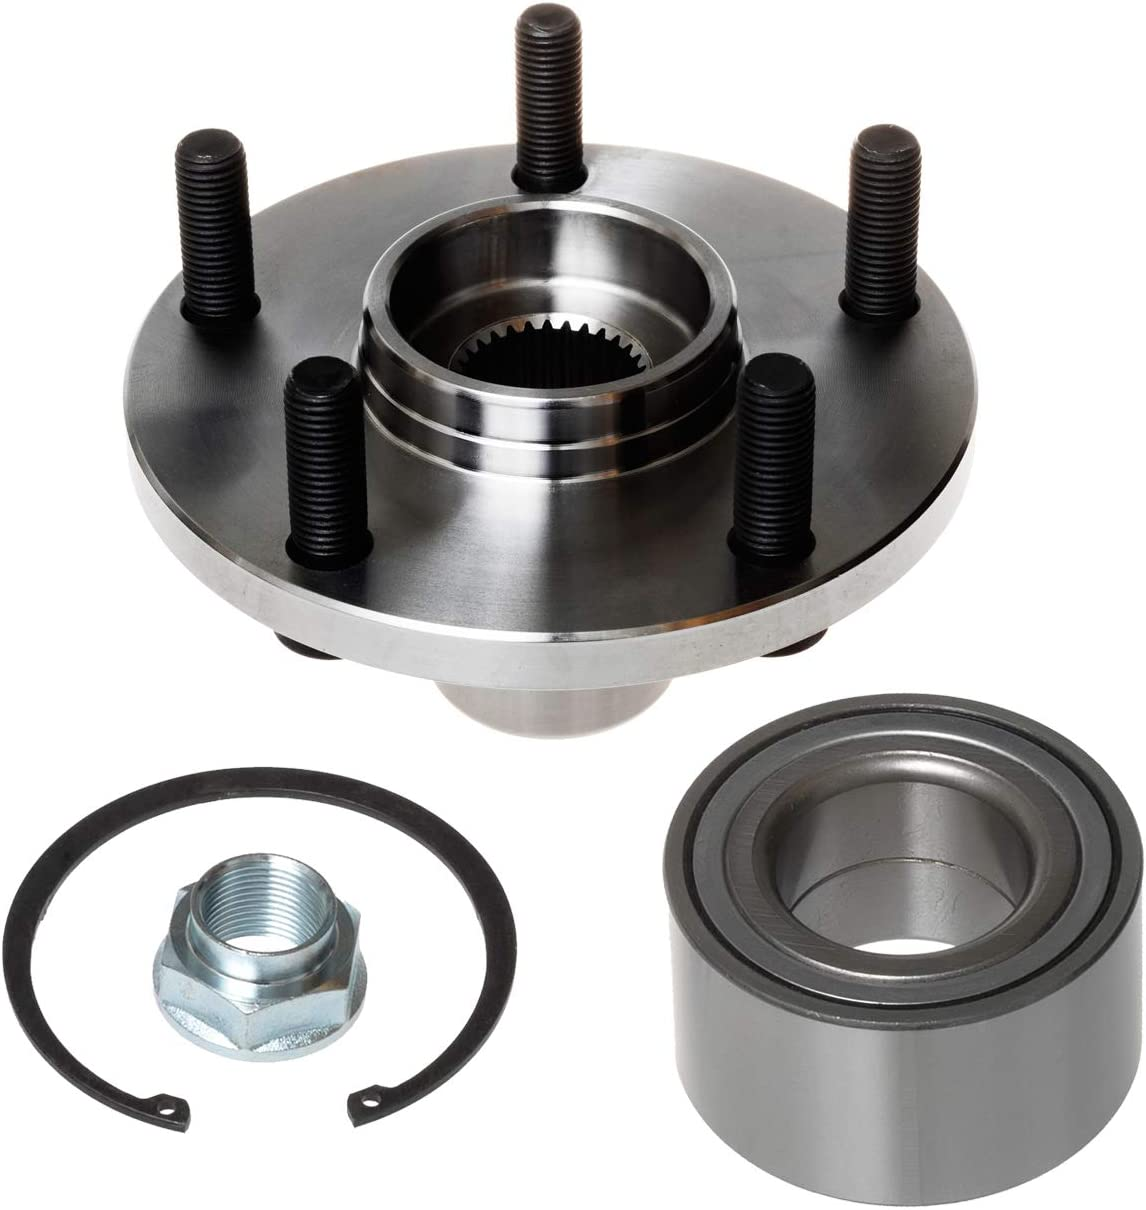 Pair 3.0L V6 TUCAREST 518509 x2 Lexus ES300 RX300 5 Lug;Hub Repair Kit Front Wheel Bearing and Hub Assembly Compatible With Toyota Avalon Camry Sienna Solara